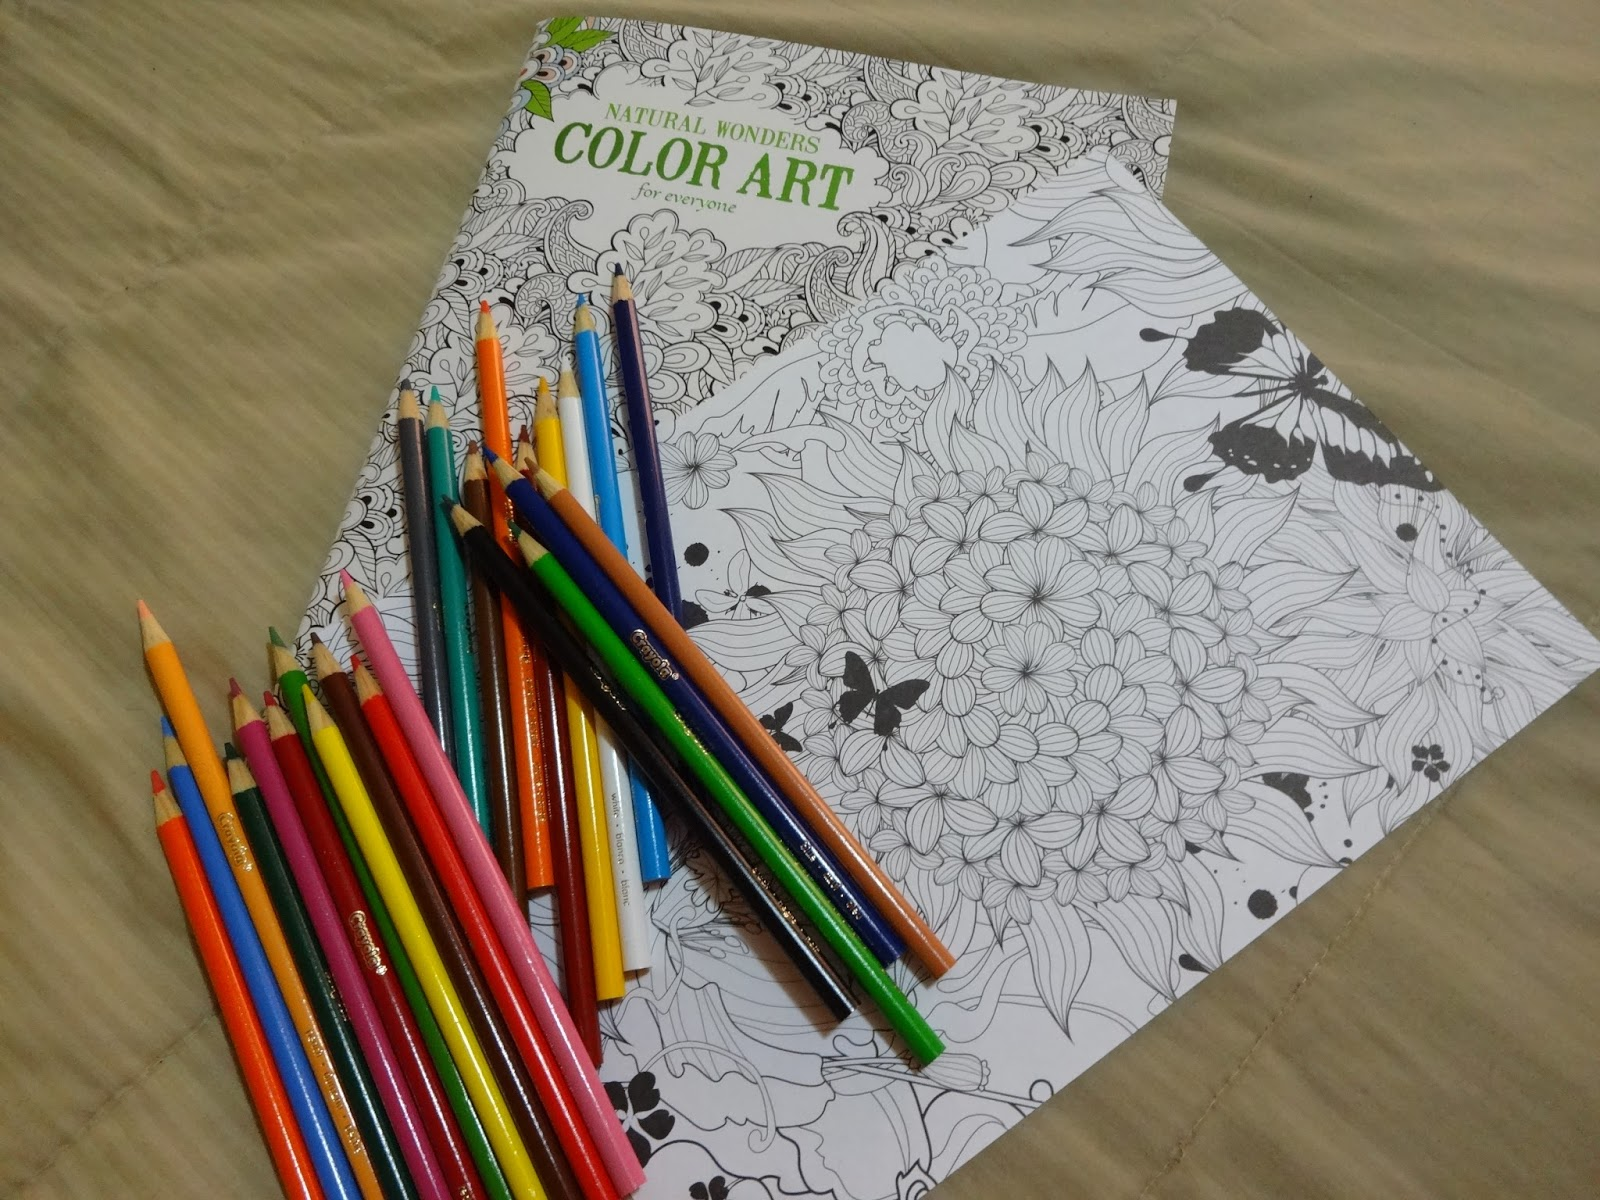 Natural Colored Fillings Coloring Books Filled With